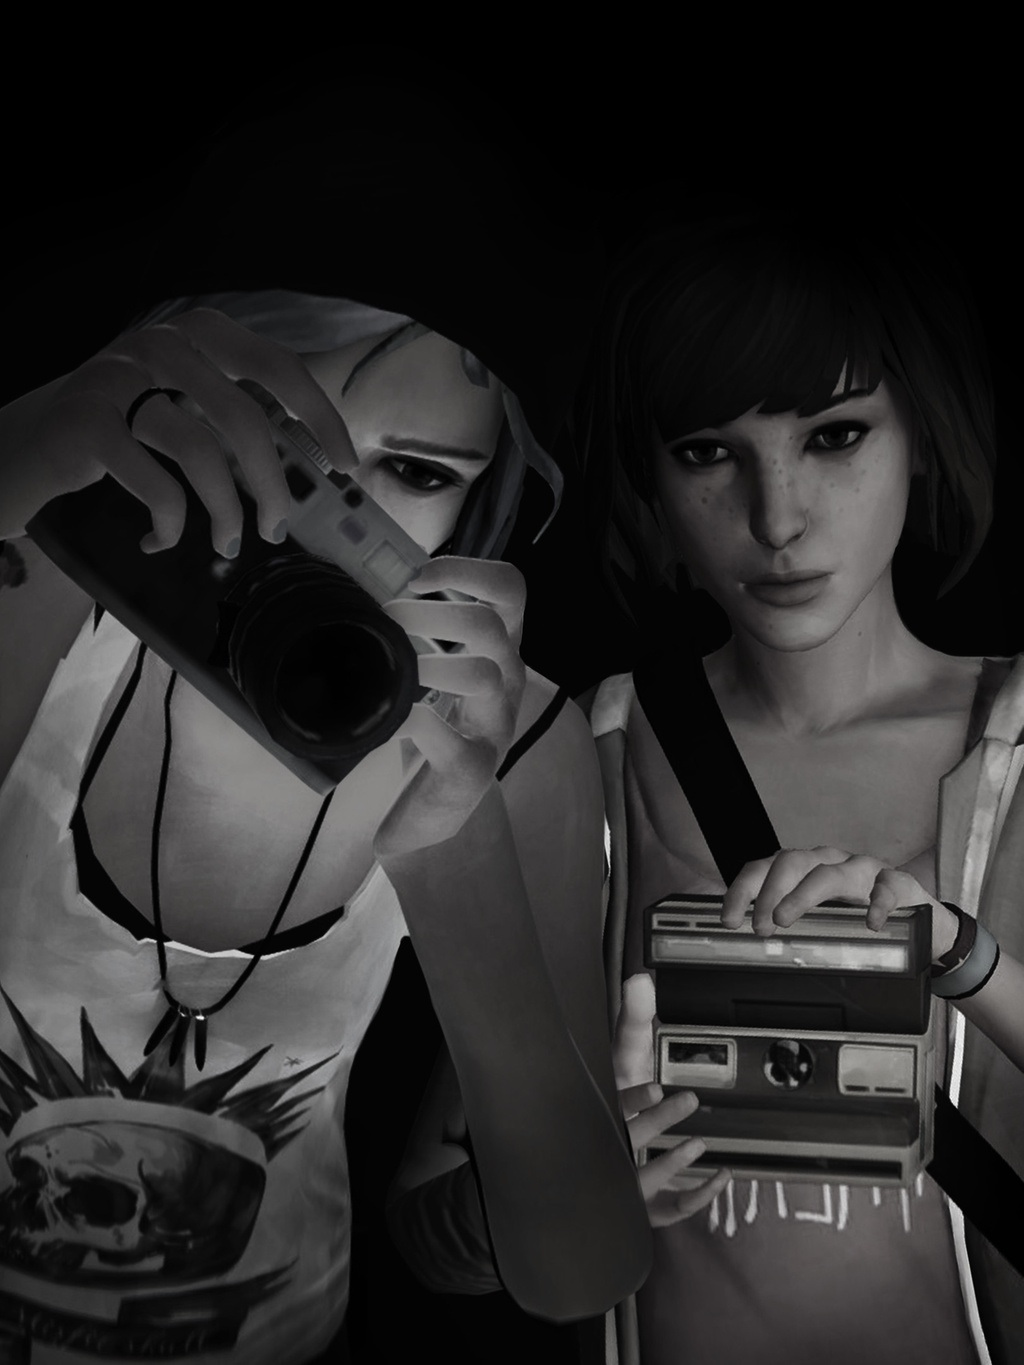 Life Is Strange Images Chloe And Max Hd Wallpaper And Fondo